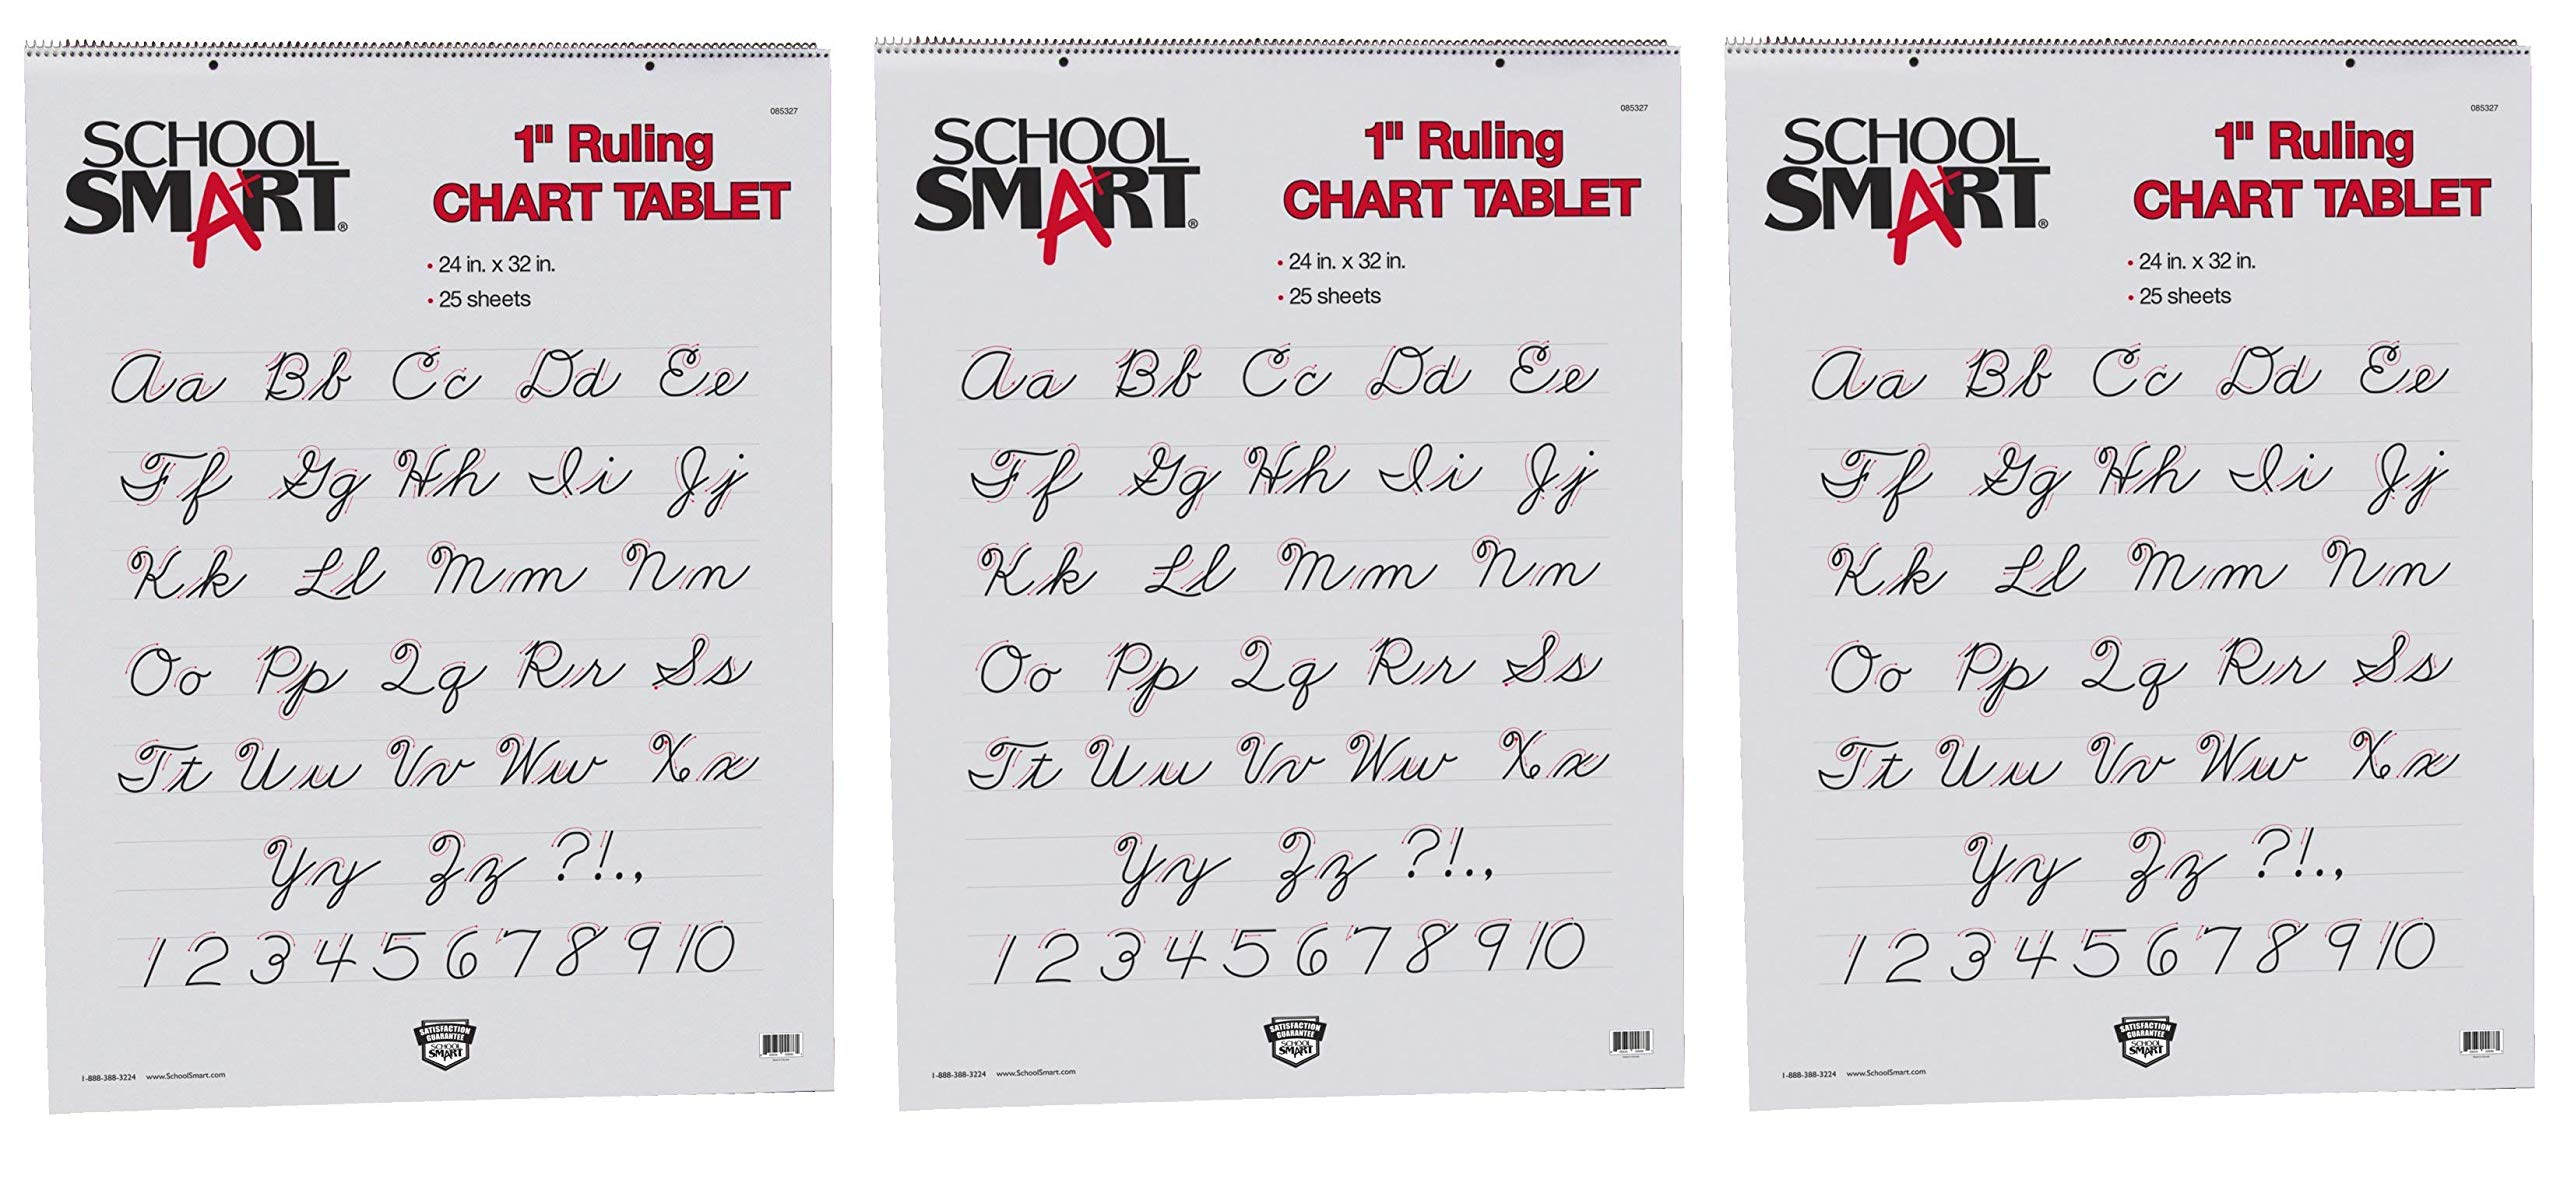 School Smart Chart Paper Pad, 24 x 32 Inches, 1 Inch Rule, 25 Sheets (Тhrее Pаck) by School Smart (Image #1)